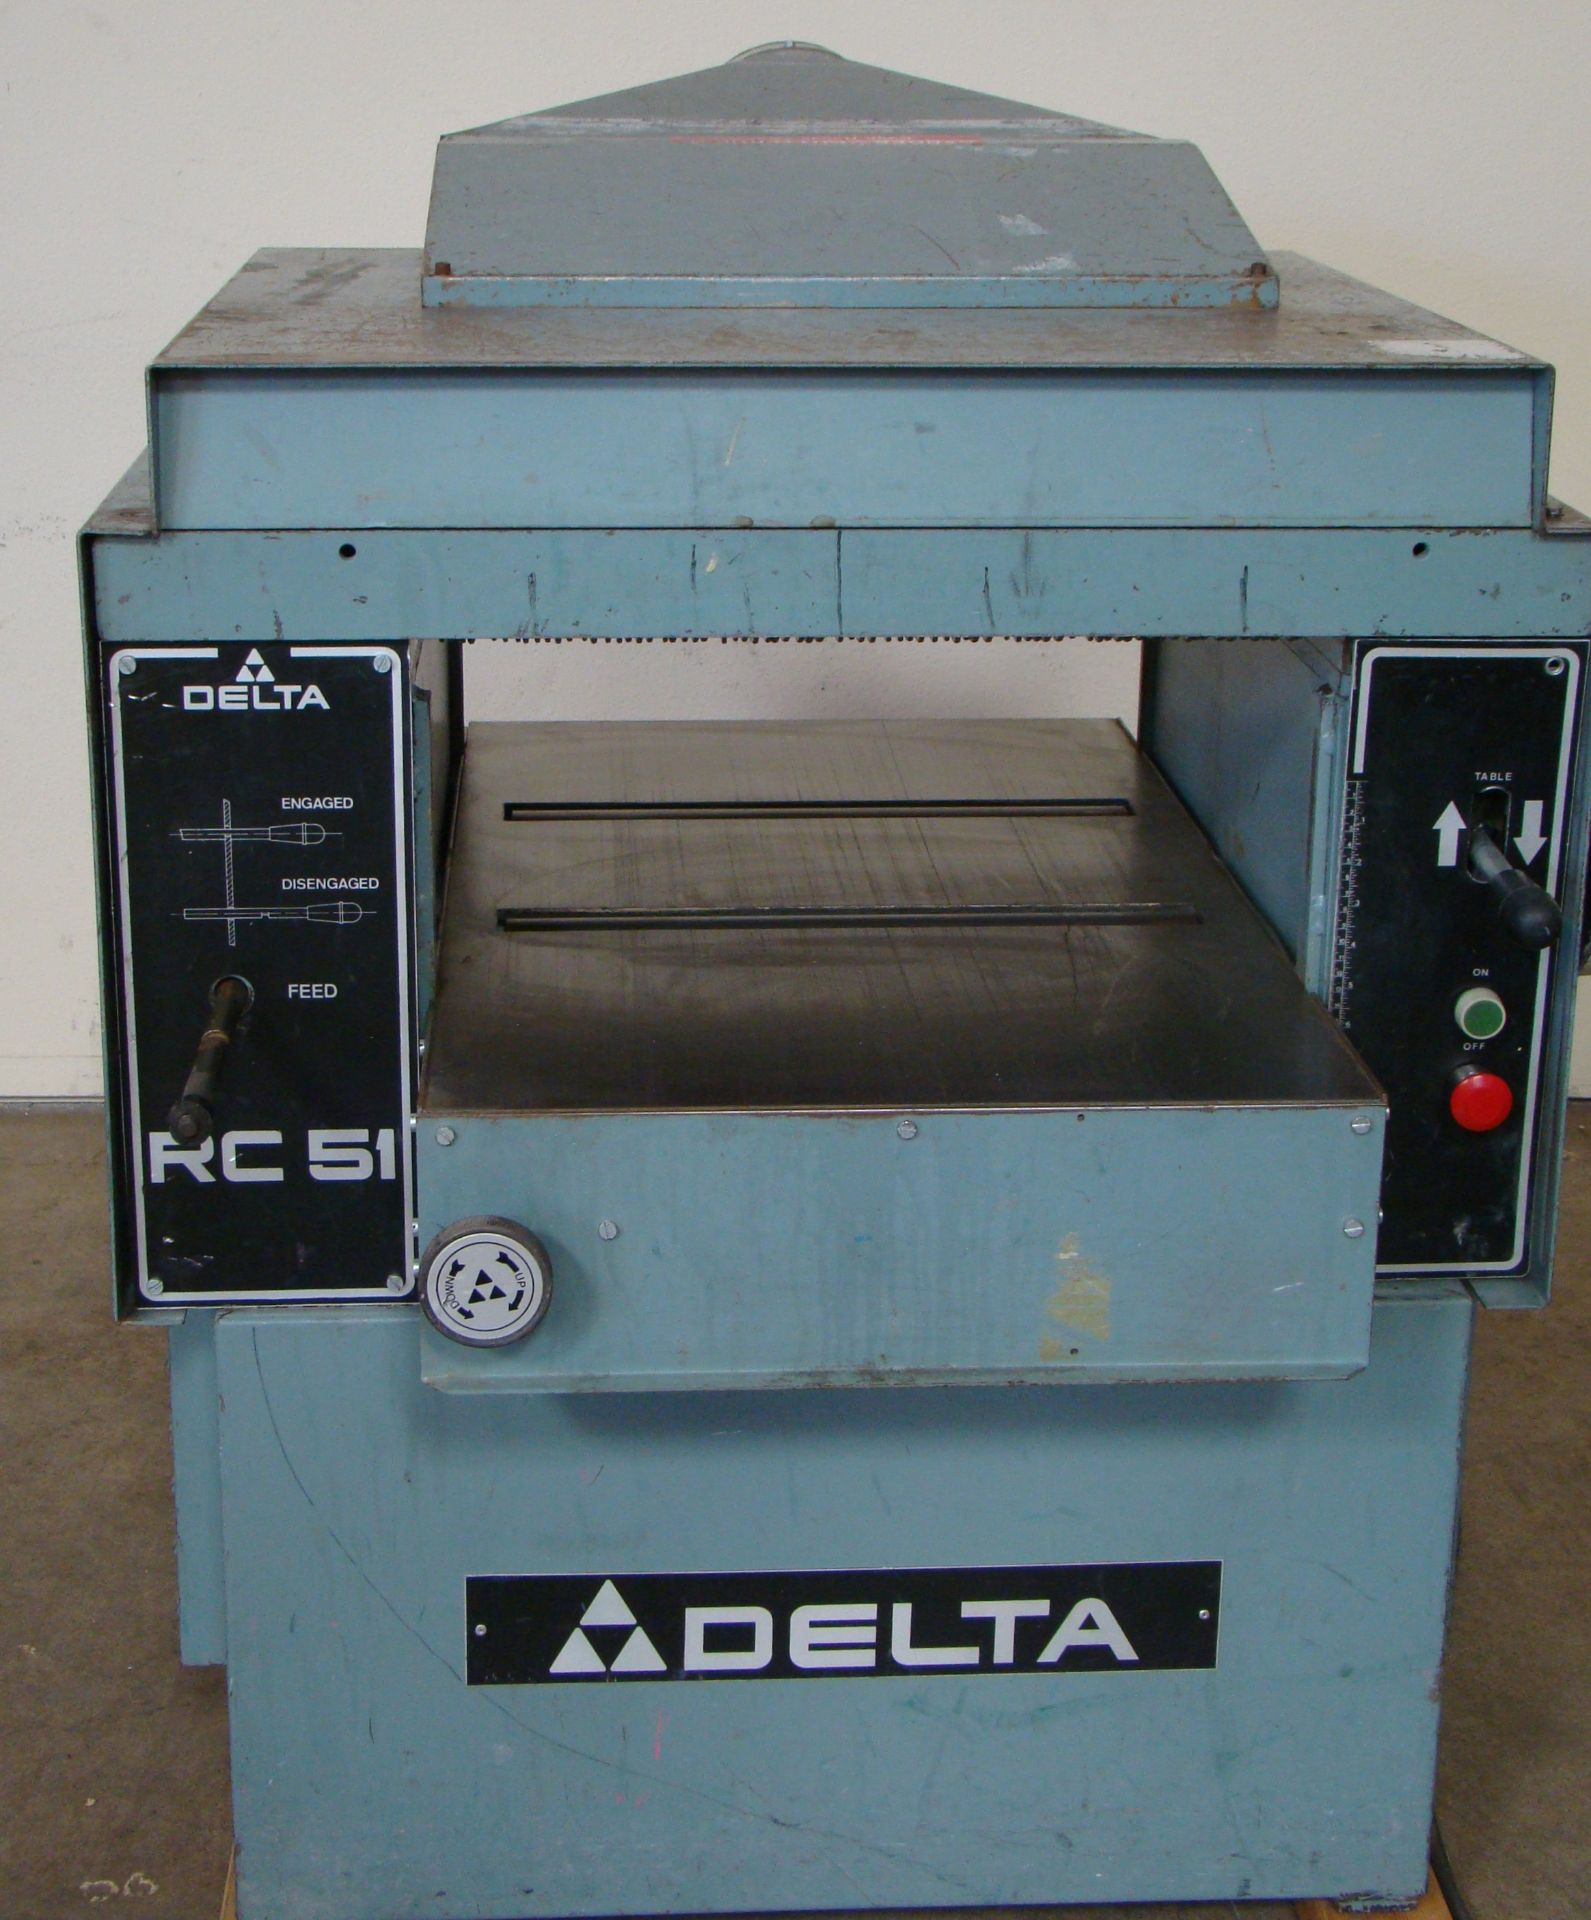 "Lot 42 - Delta RC51 20"" Wood Planer Model #22-460 7-1/2"" HP 230/460 Volt 3PH"